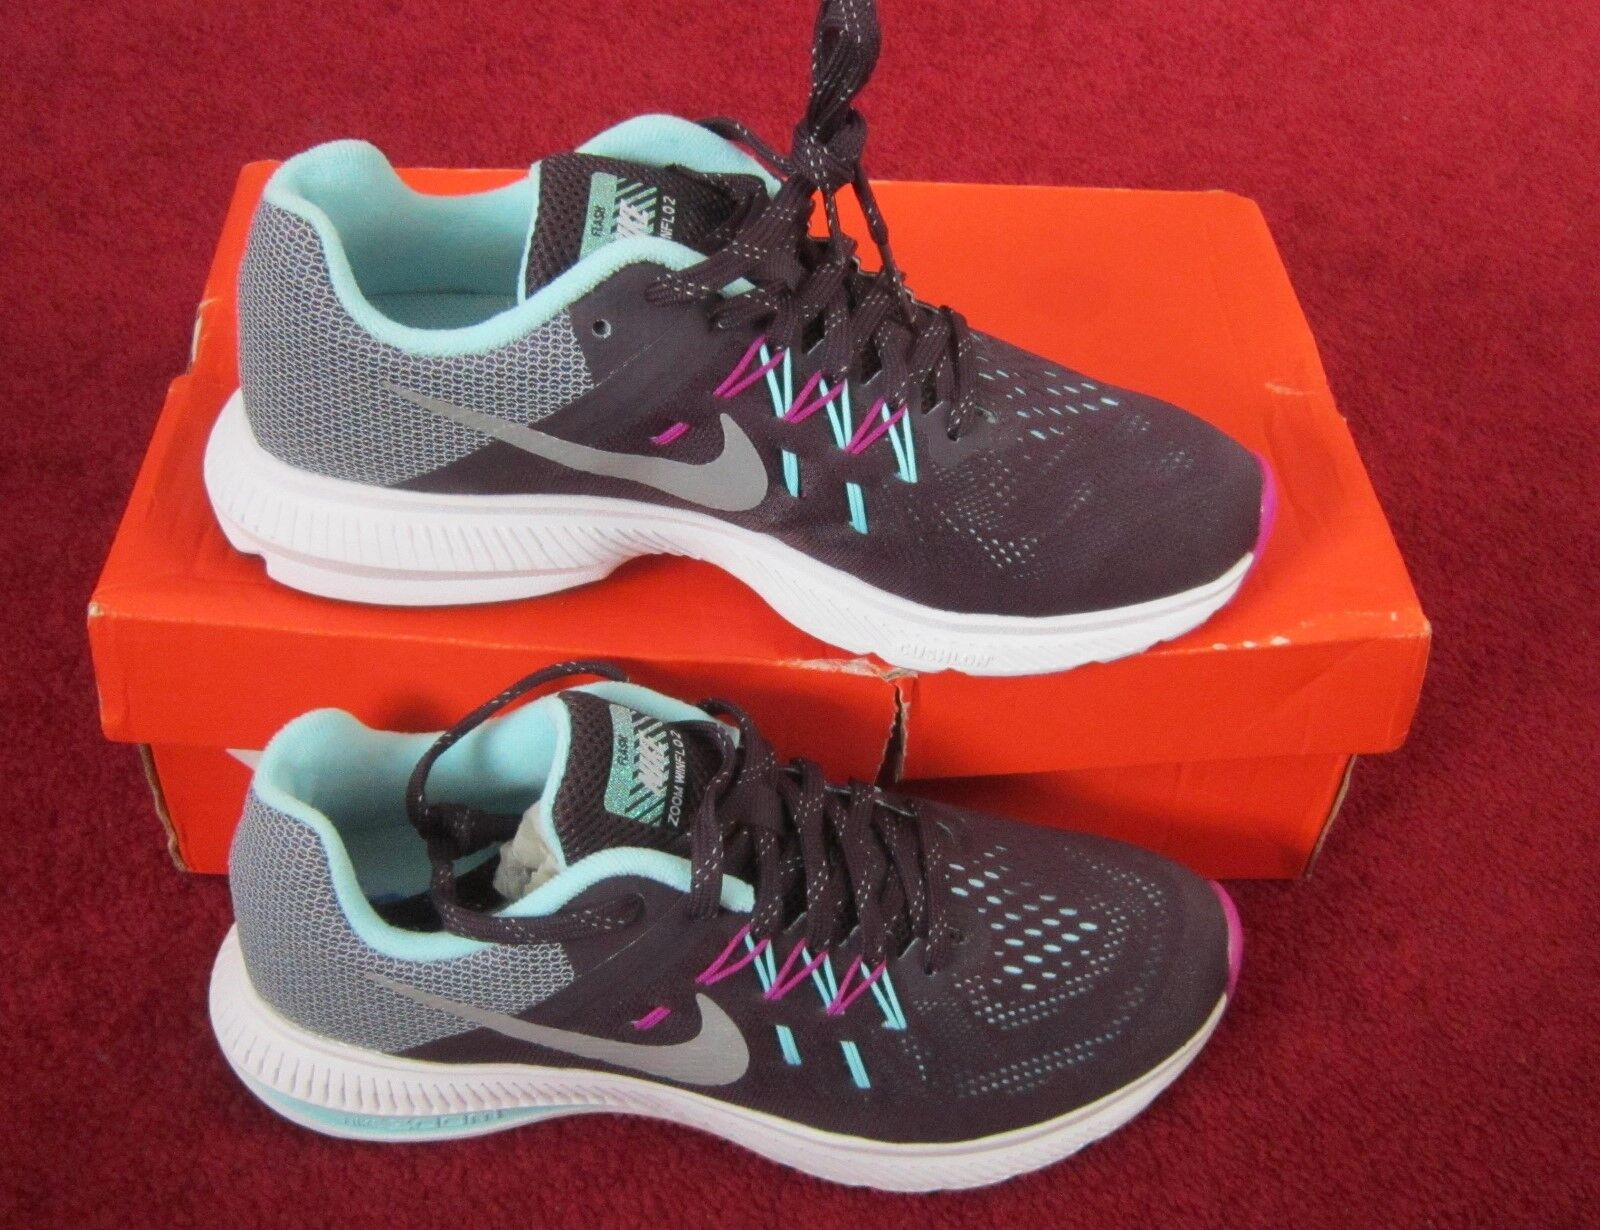 NIKE femmes ZOOM WINFLO 2 FLASH Taille 4.5 violet REFLECT argent RUNNING TRAINER